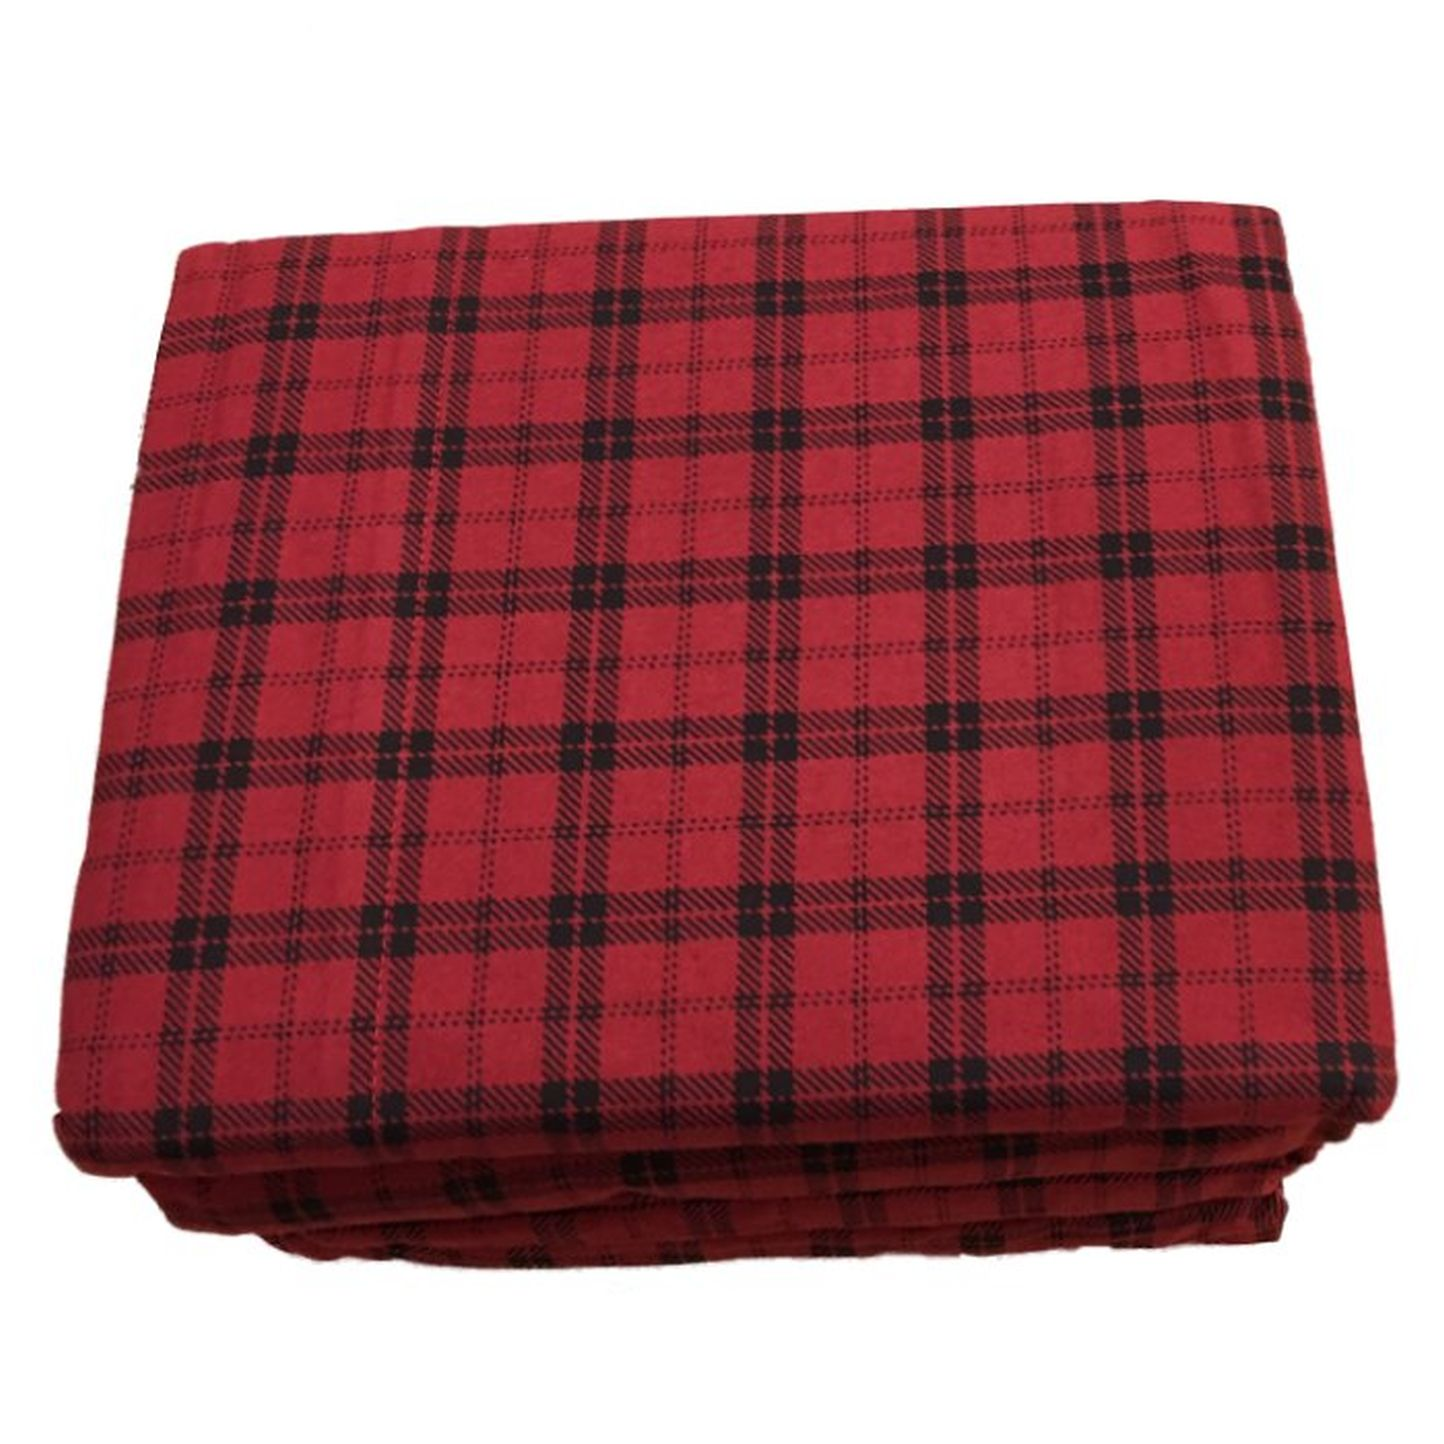 Lovely Cuddle Duds Plaid Flannel Sheet Set Red Buffalo Check Full Bed Sheets  Bedding